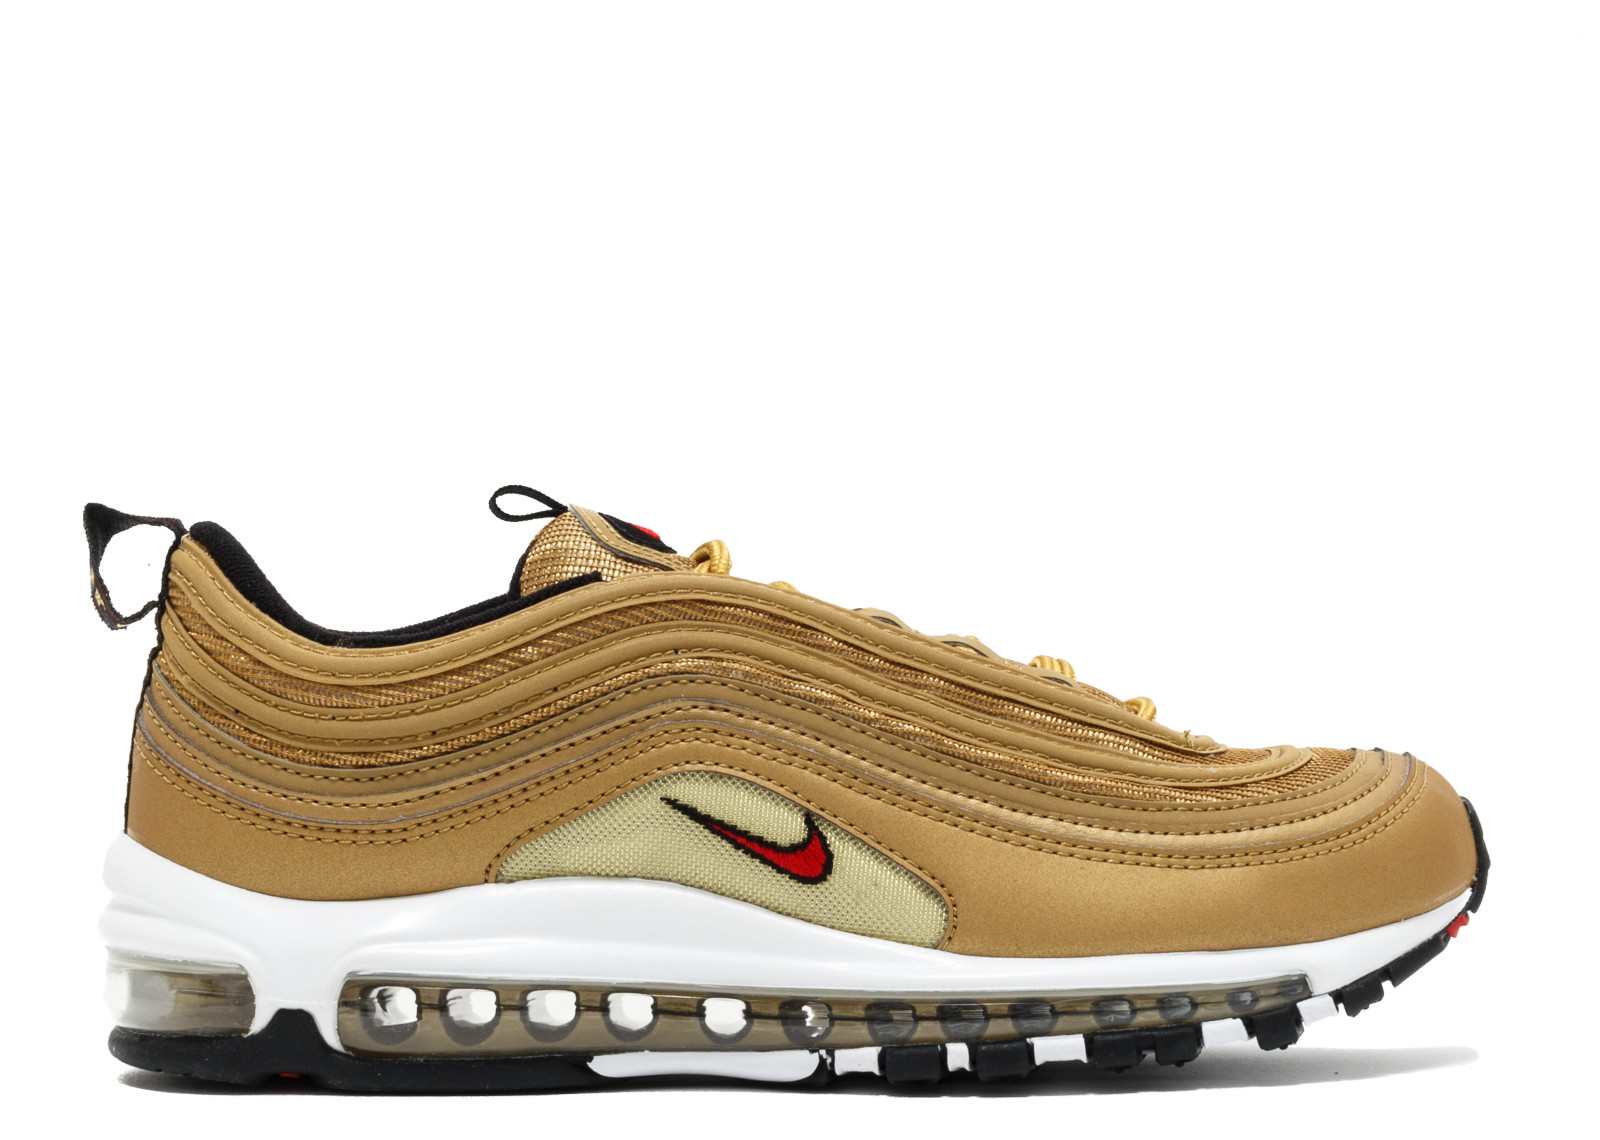 nike air max 97 og qs 2017 release nikeg1046 air max 87. Black Bedroom Furniture Sets. Home Design Ideas